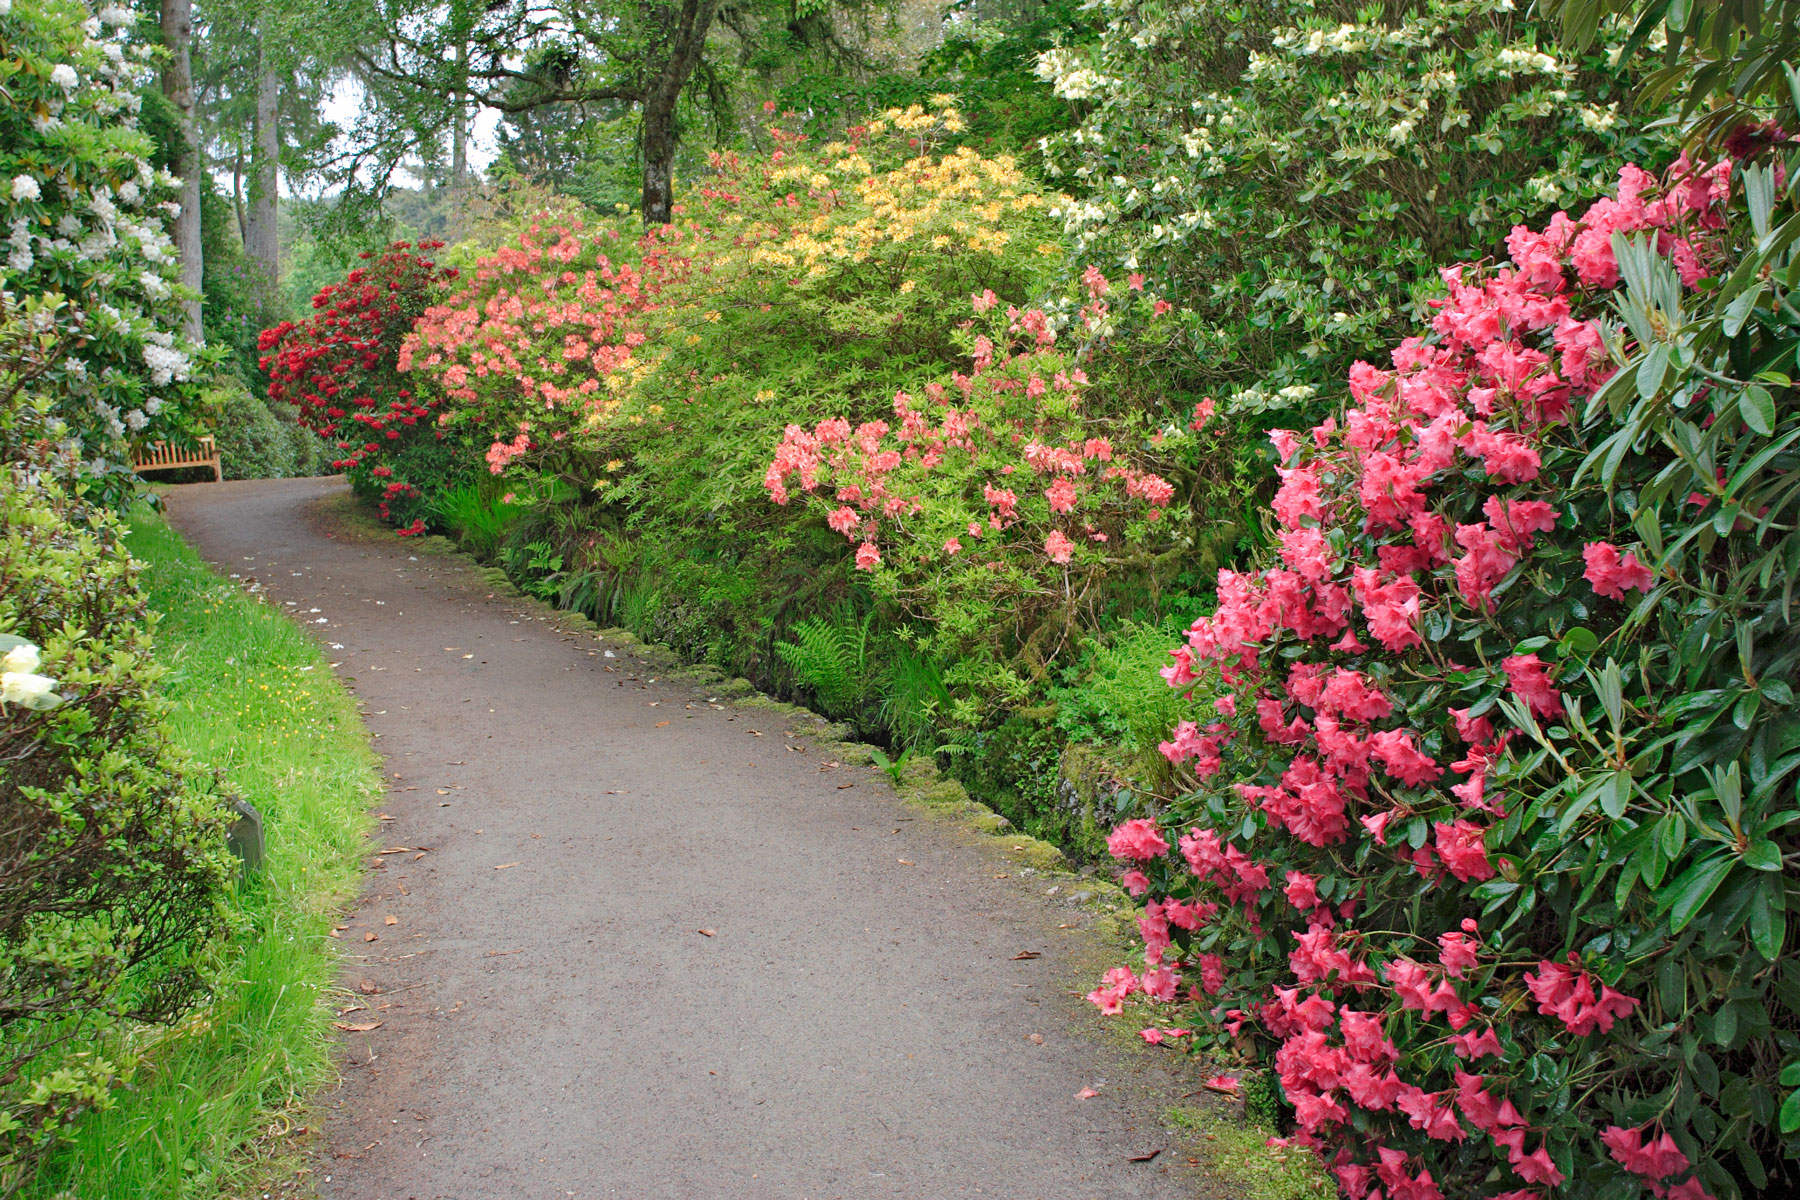 Beautiful garden with flowery bushes and walk path